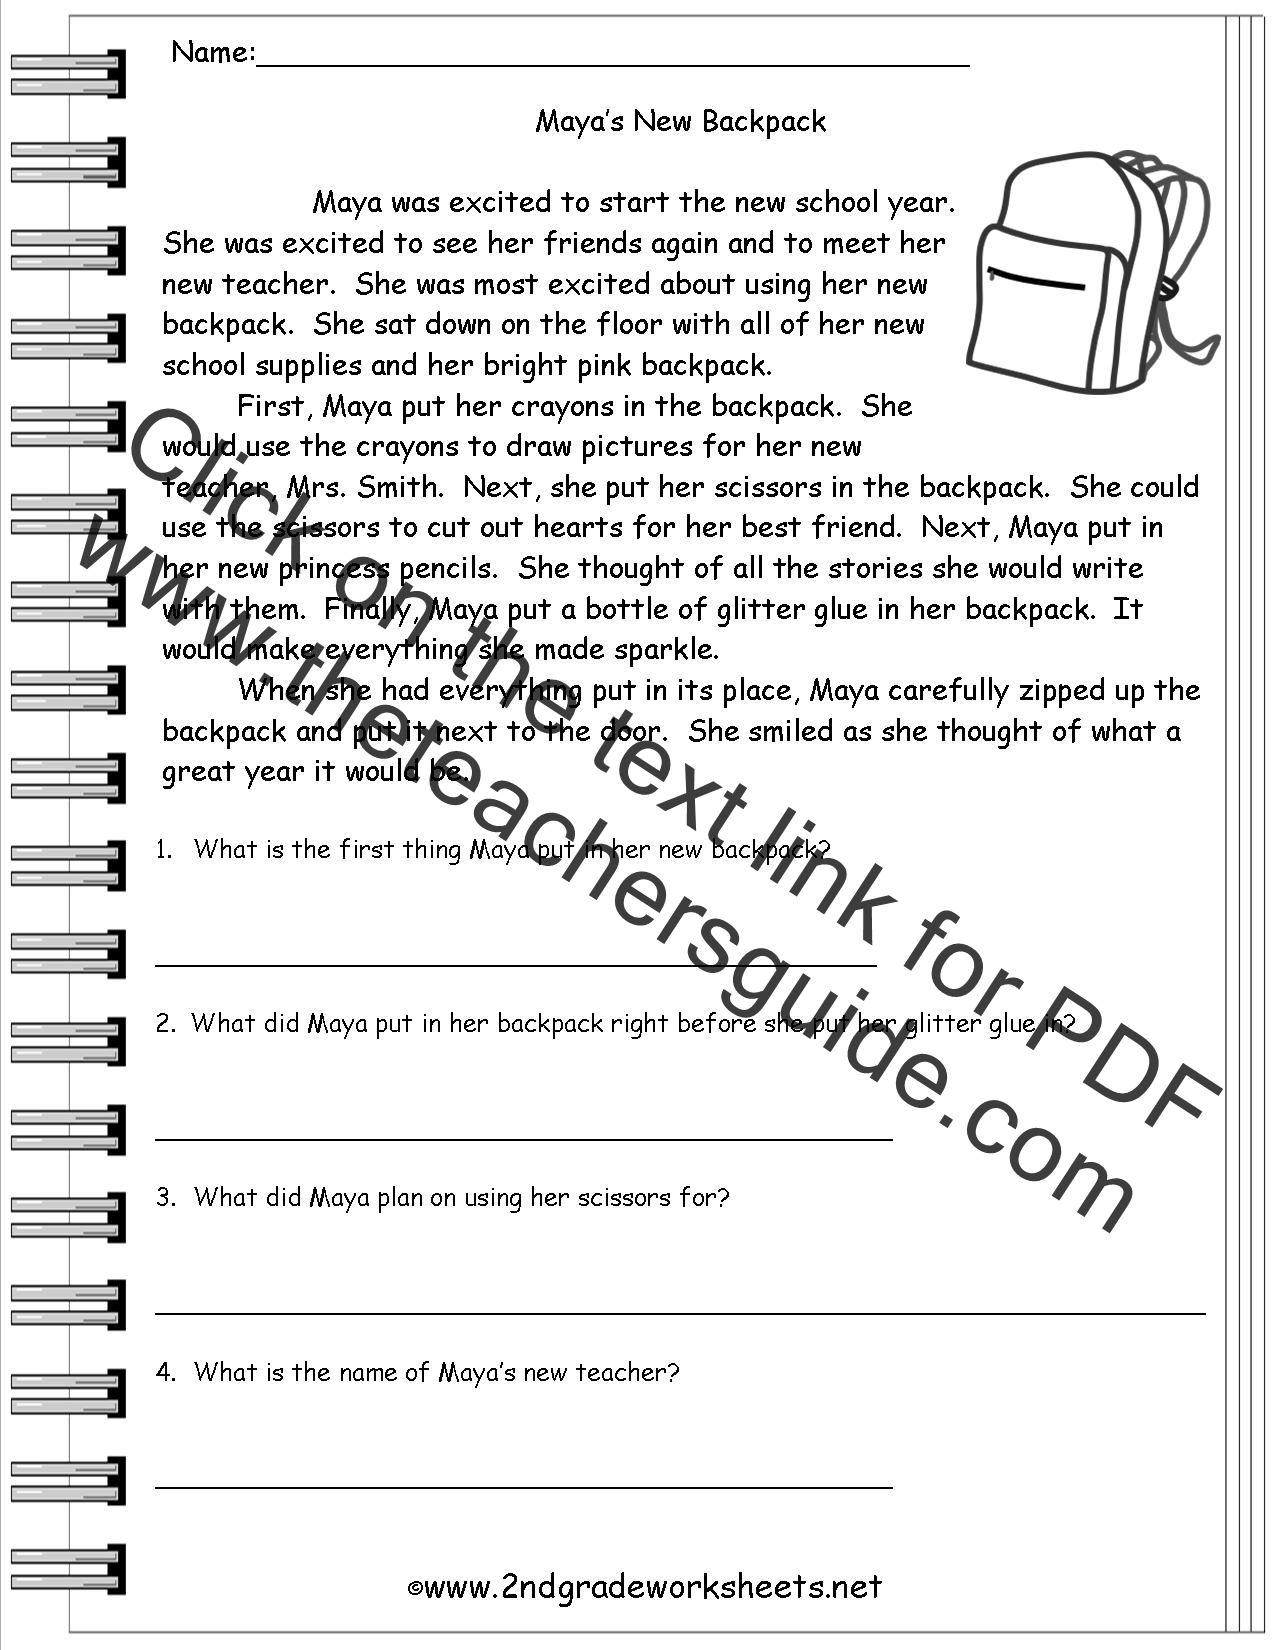 Worksheet Reading Comprehension Activities 2nd Grade reading worksheeets literature worksheets